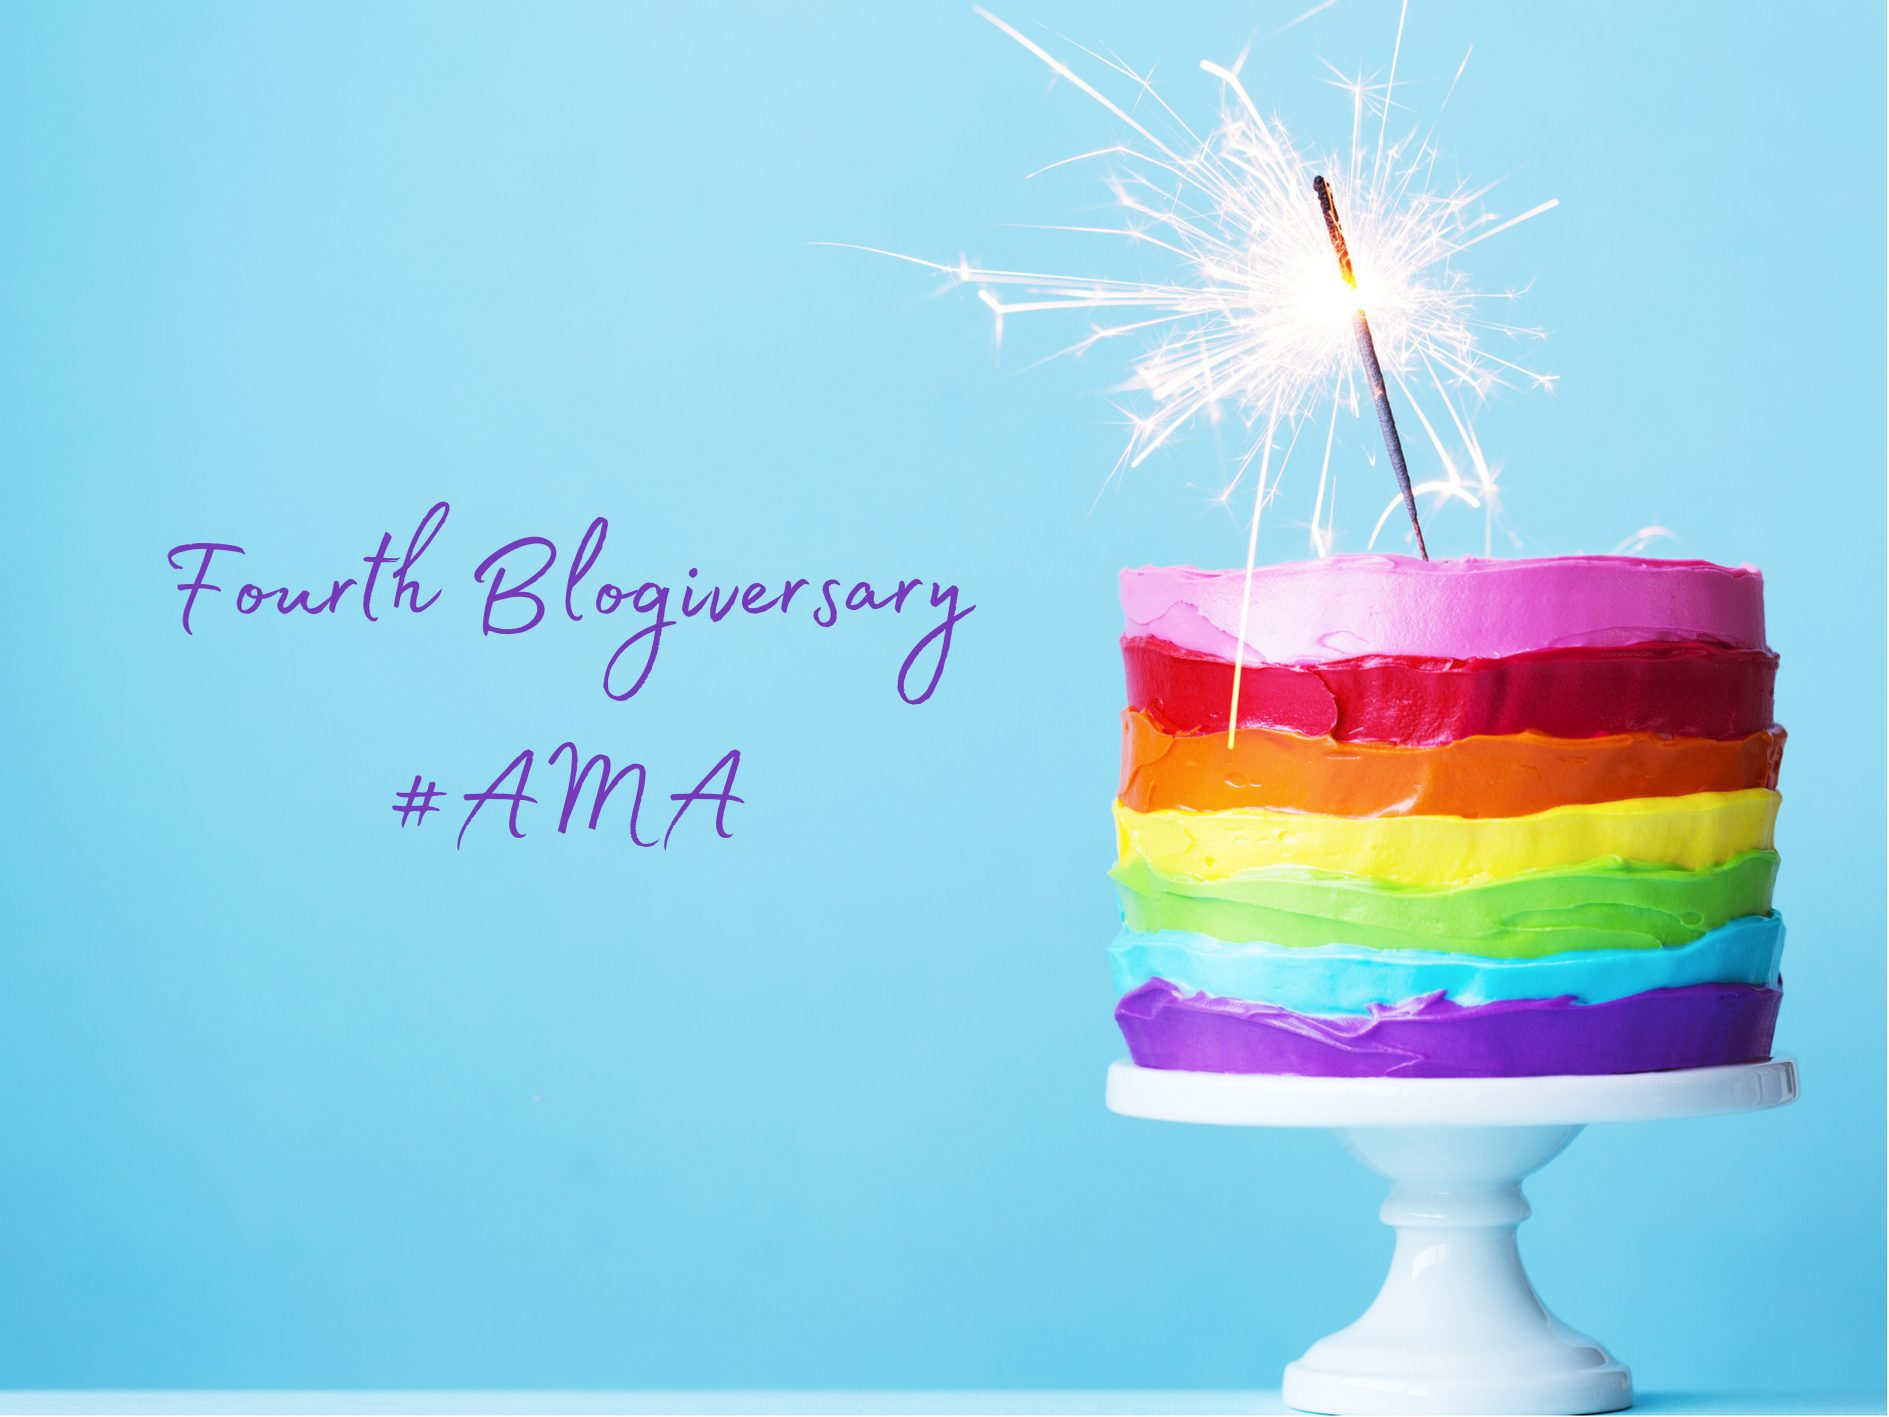 Fourth Blogiversary #AMA